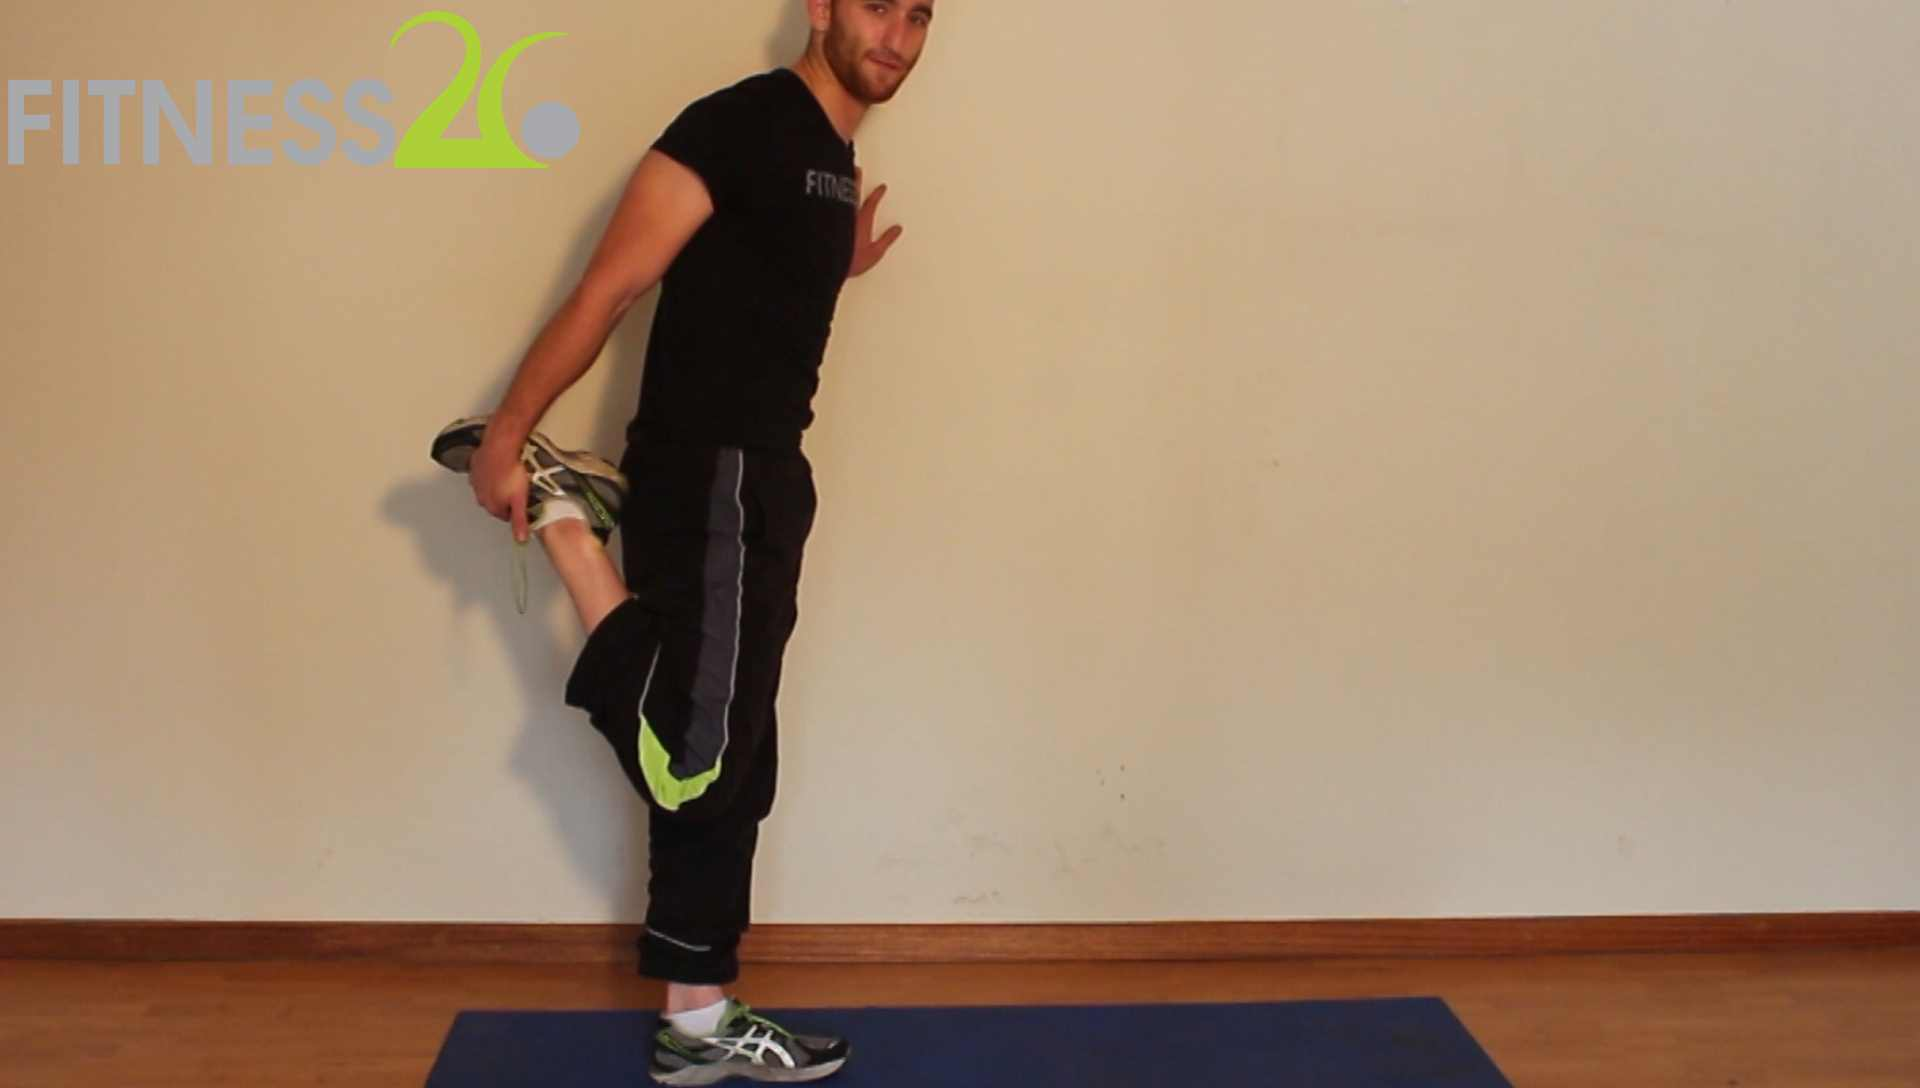 Josh – Quickstart Routine For Beginners : Post Workout Stretch